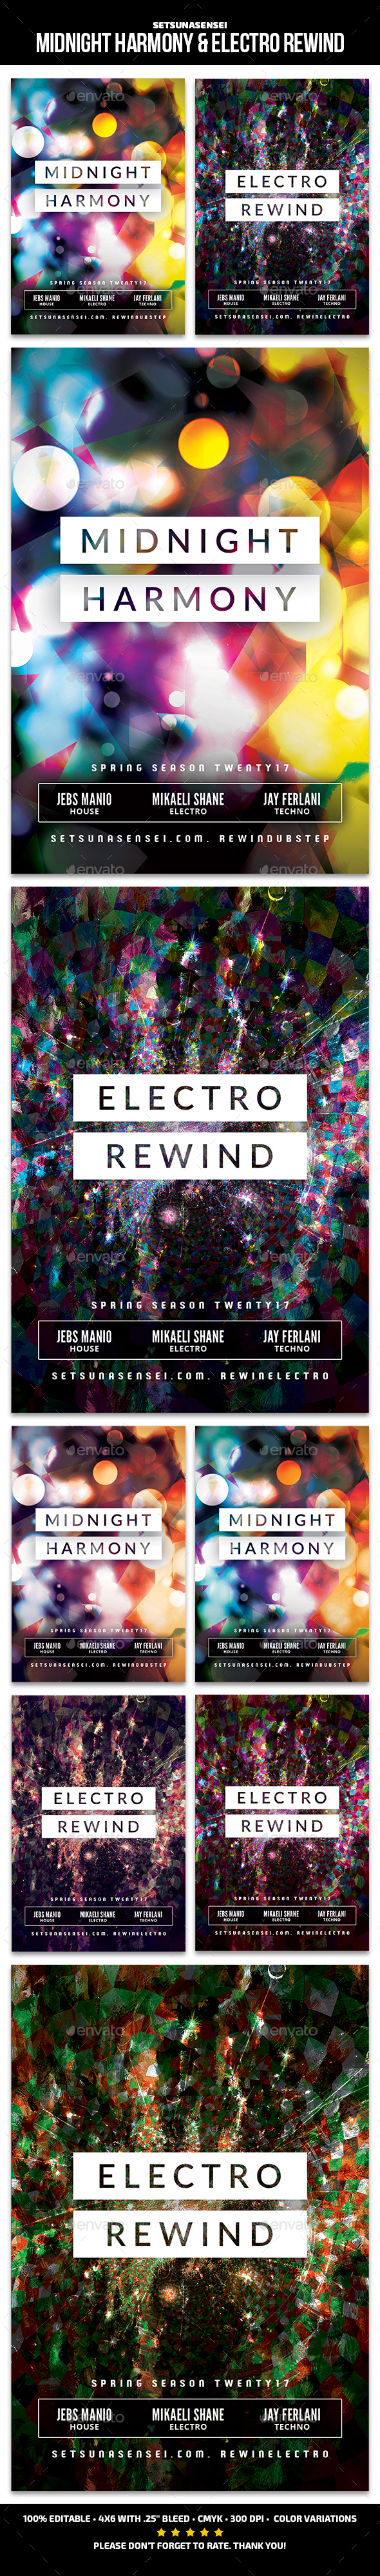 Midnight Harmony & Electro Rewind Flyer - Clubs & Parties Events